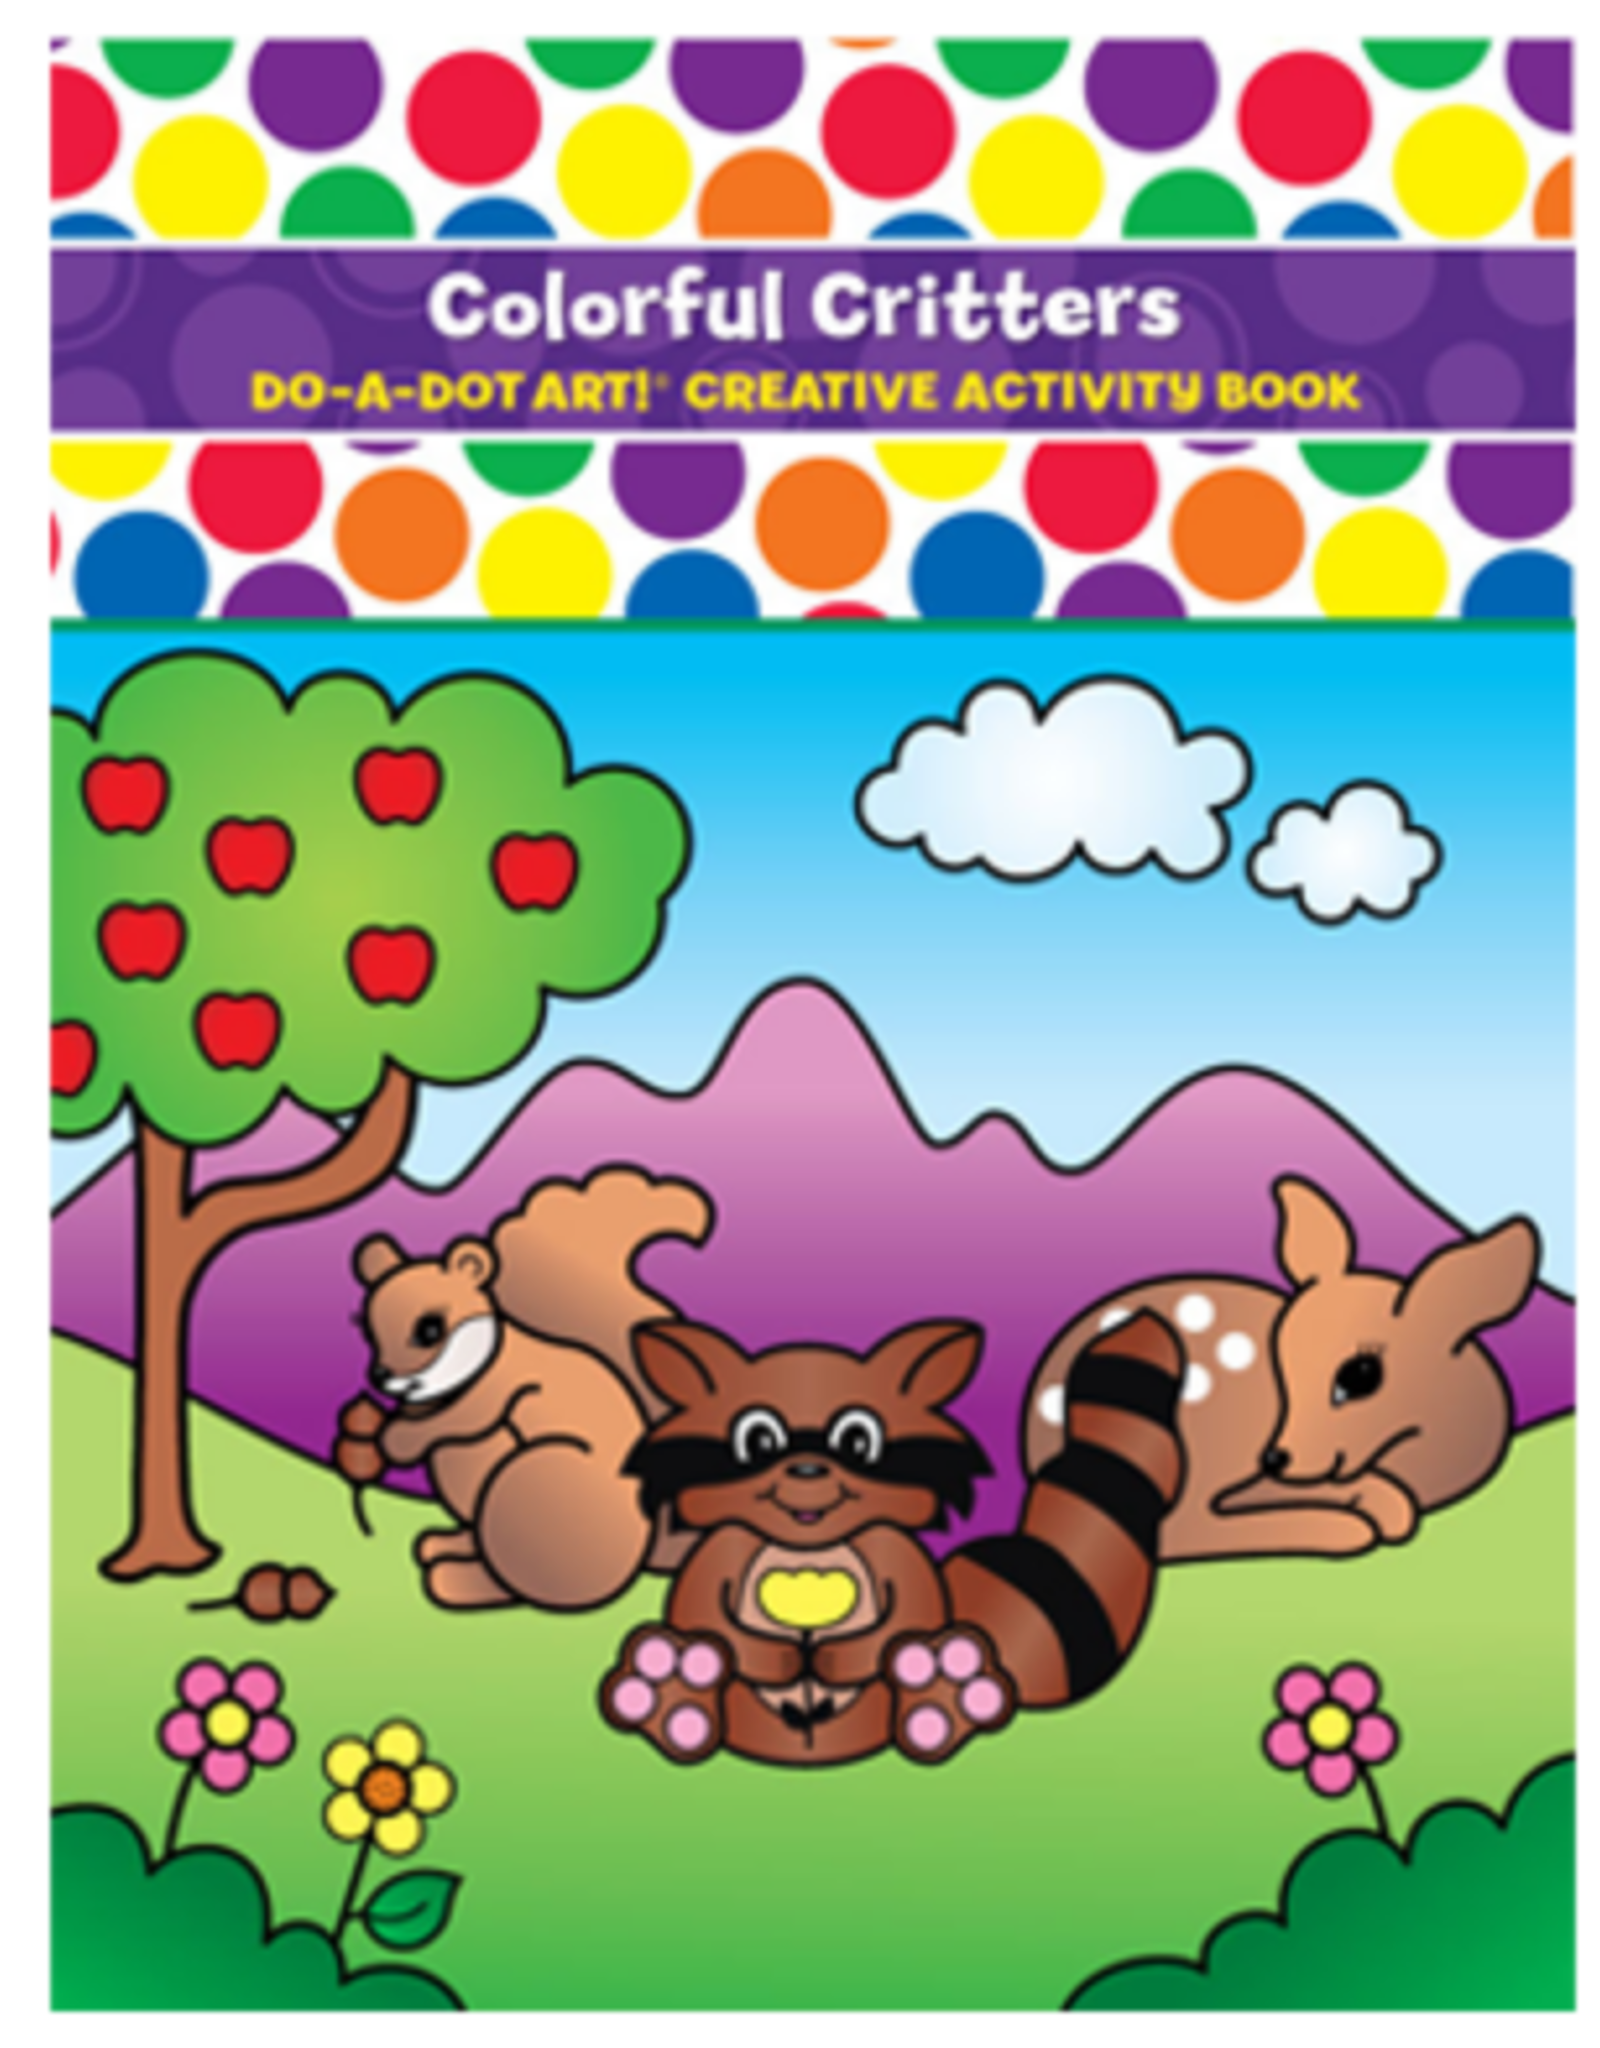 Do-A-Dot Colorful Critters Book